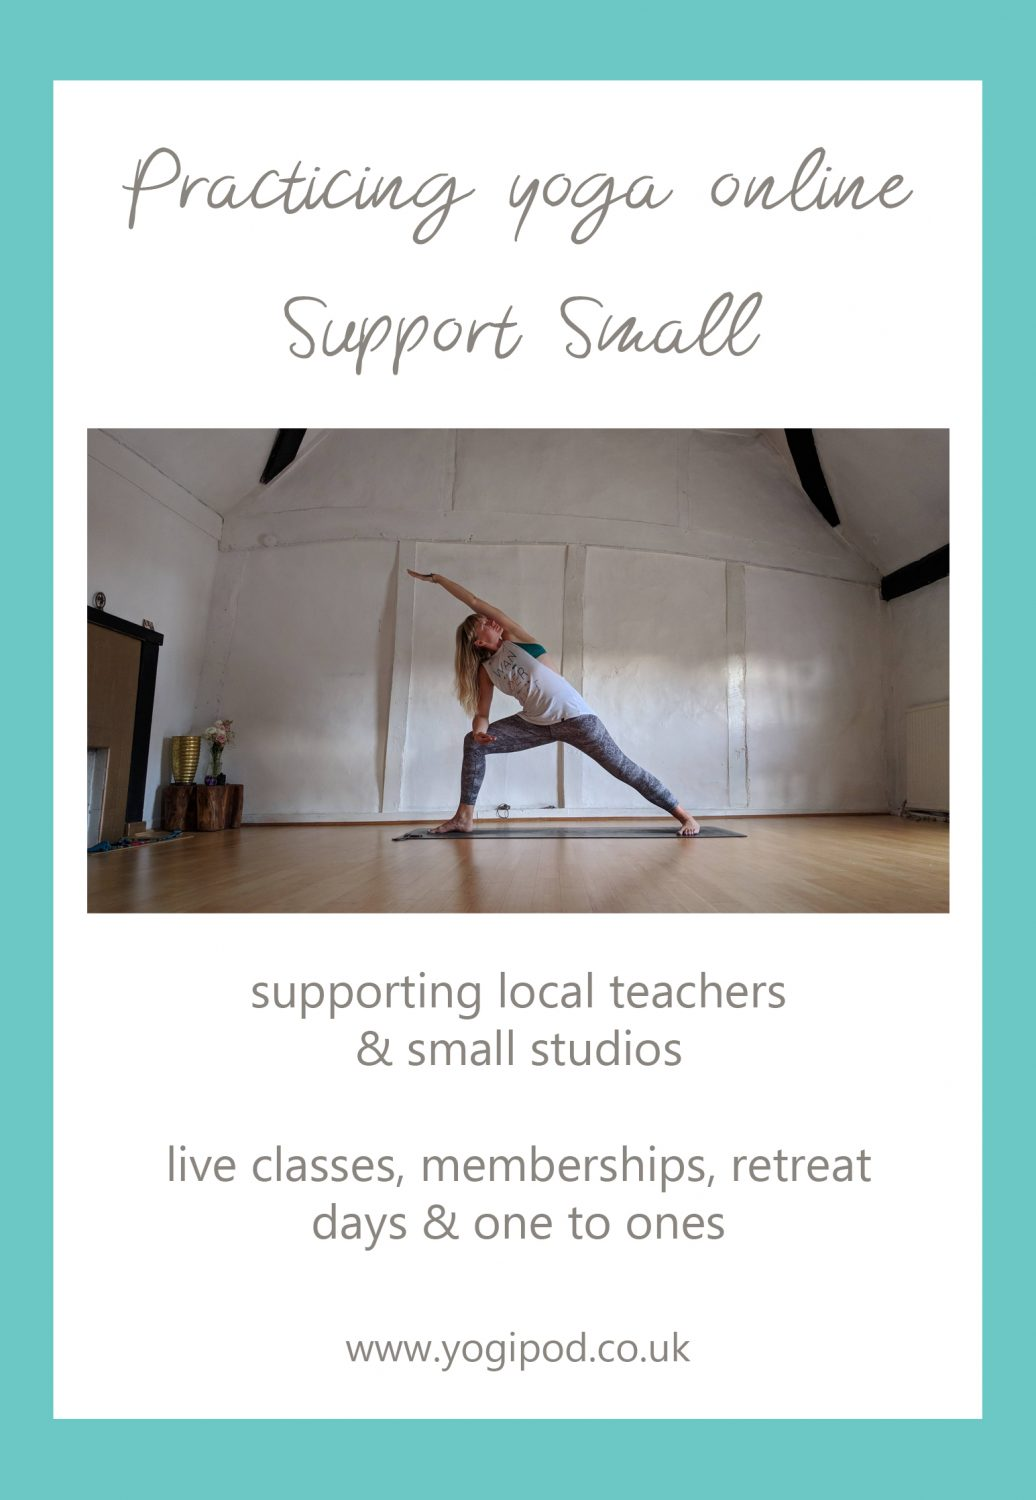 practicing yoga online, support small yoga studios and teachers, online yoga teachers